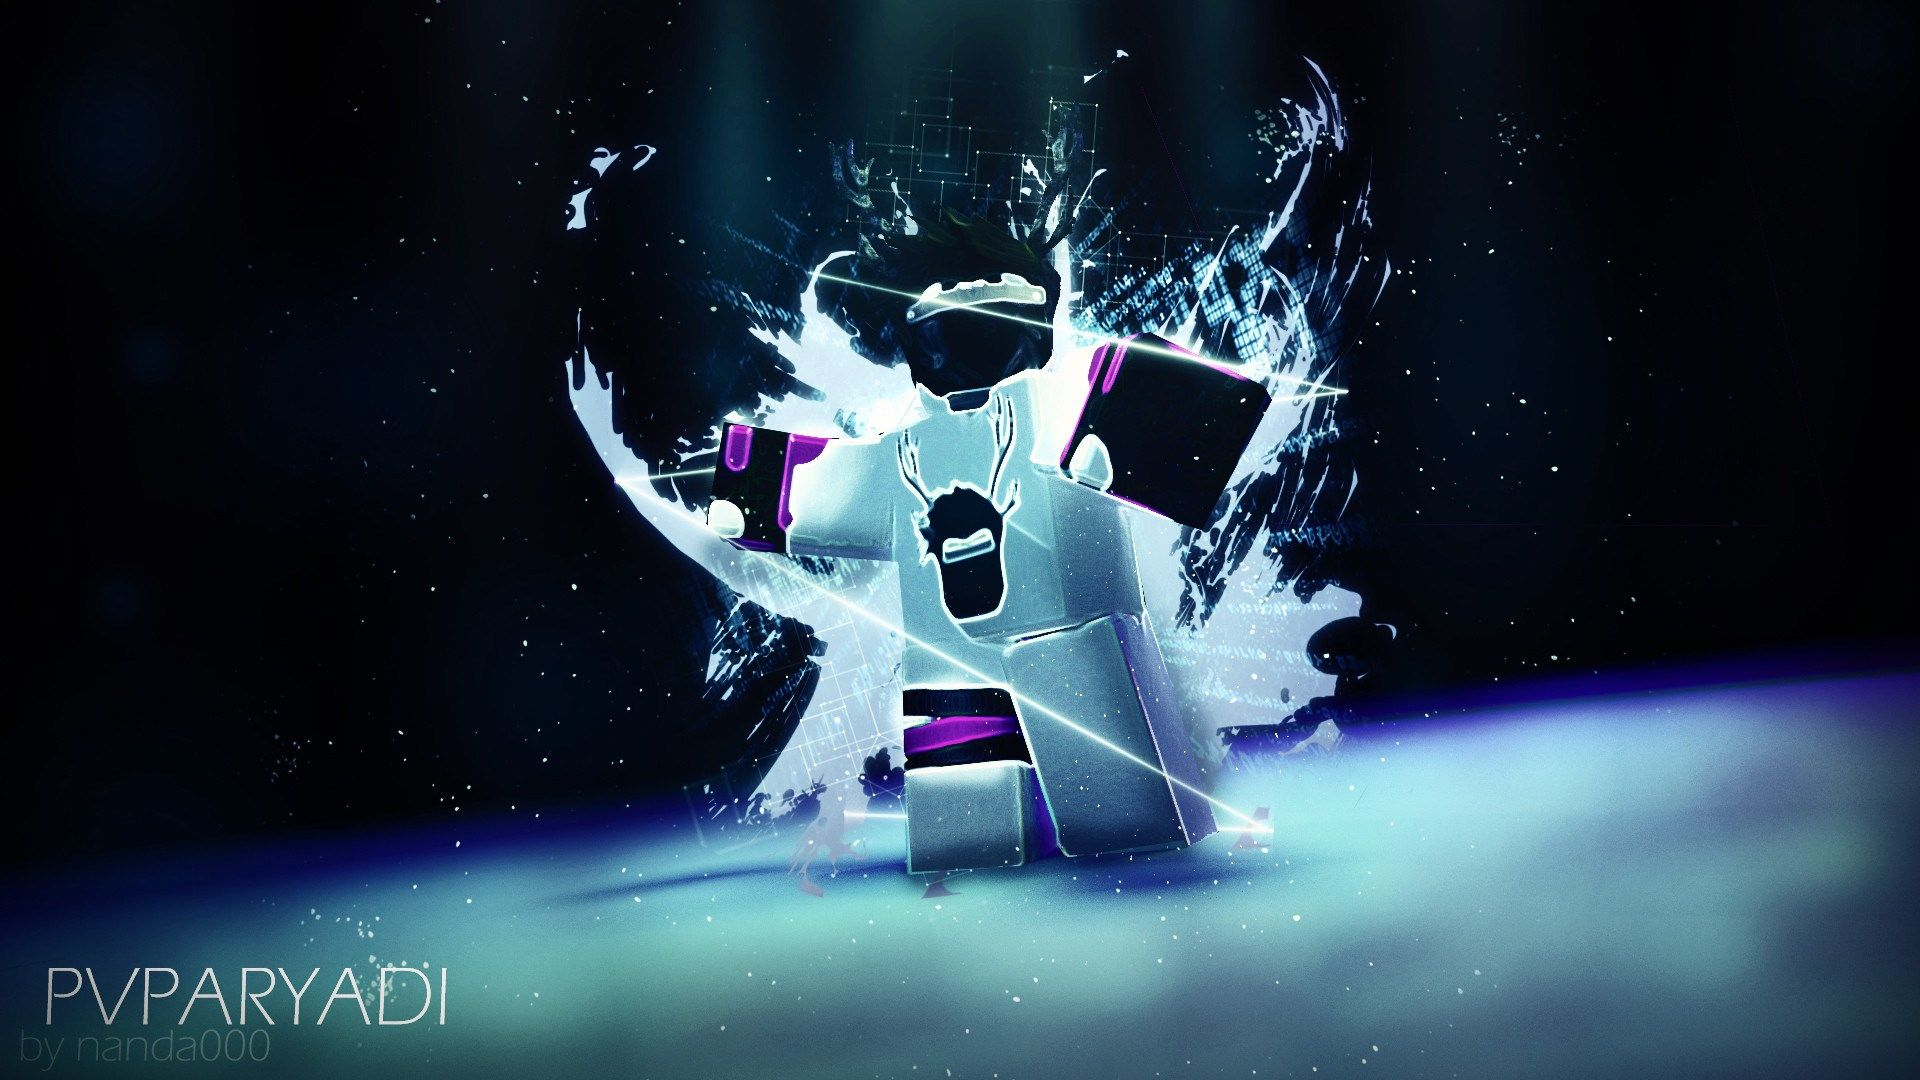 Cute Roblox Wallpapers Top Free Cute Roblox Backgrounds Wallpaperaccess